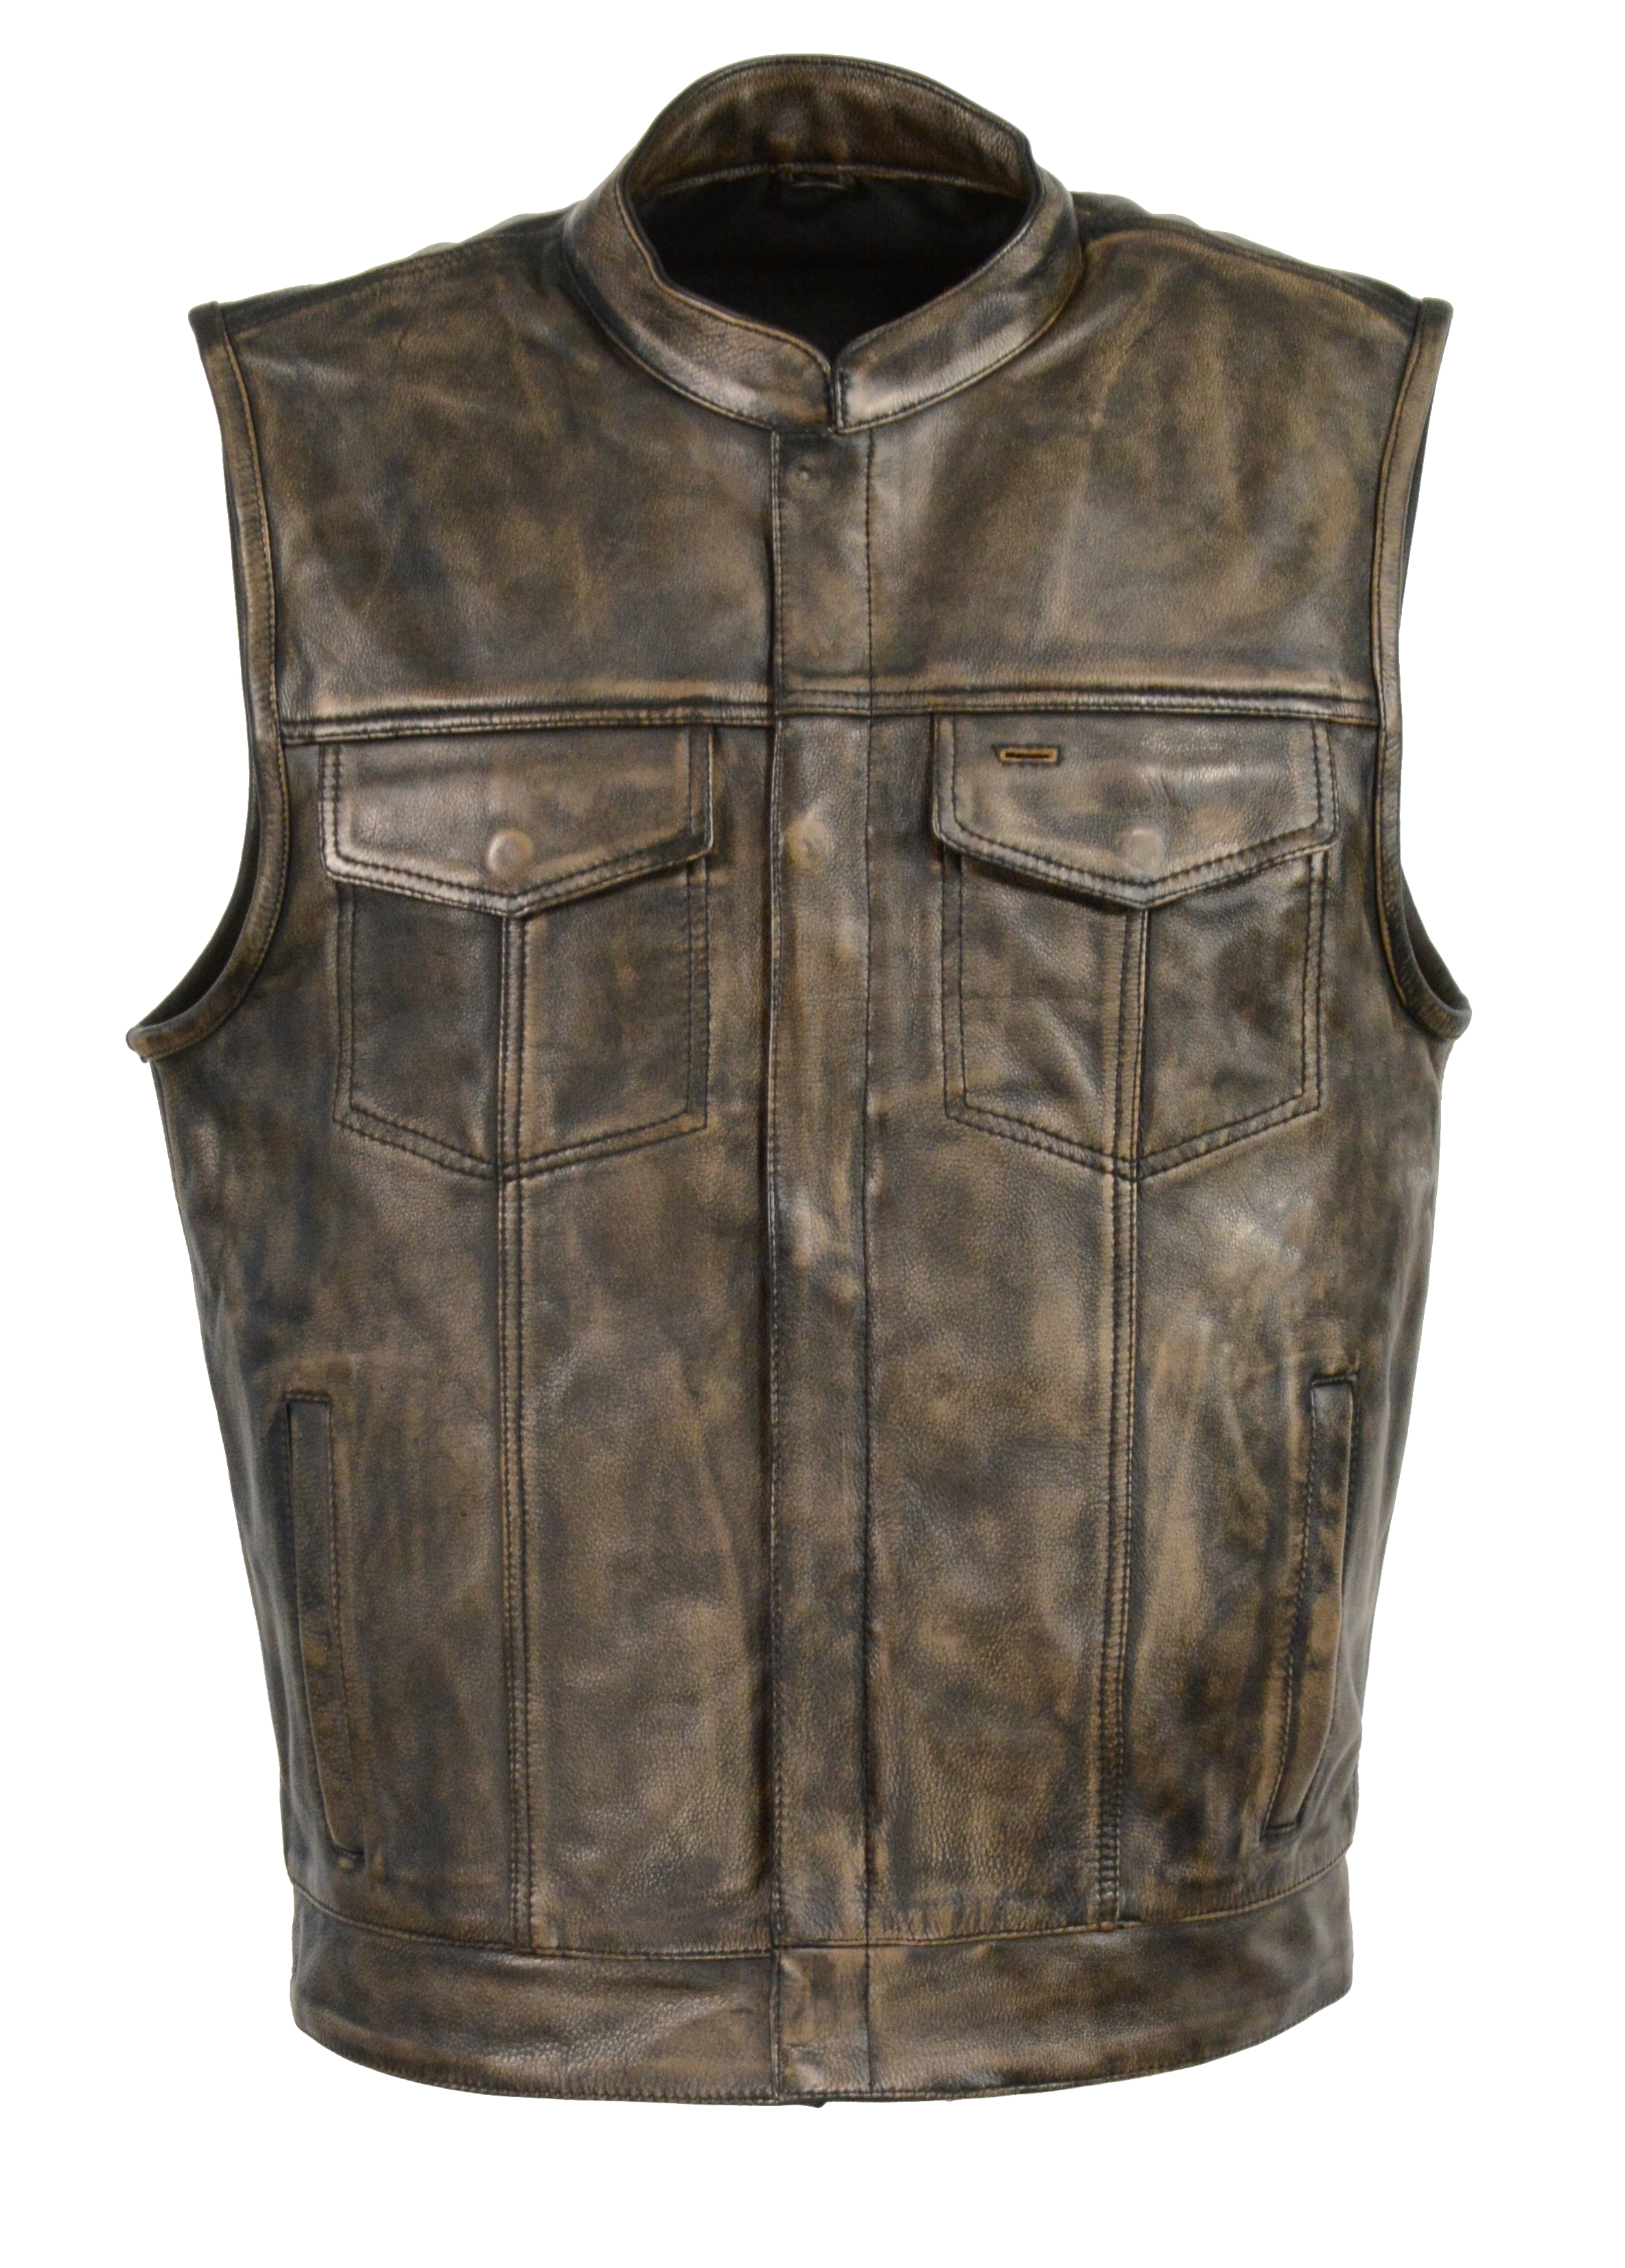 Butter Soft Distressed Brown Son Of Anarchy Style Leather